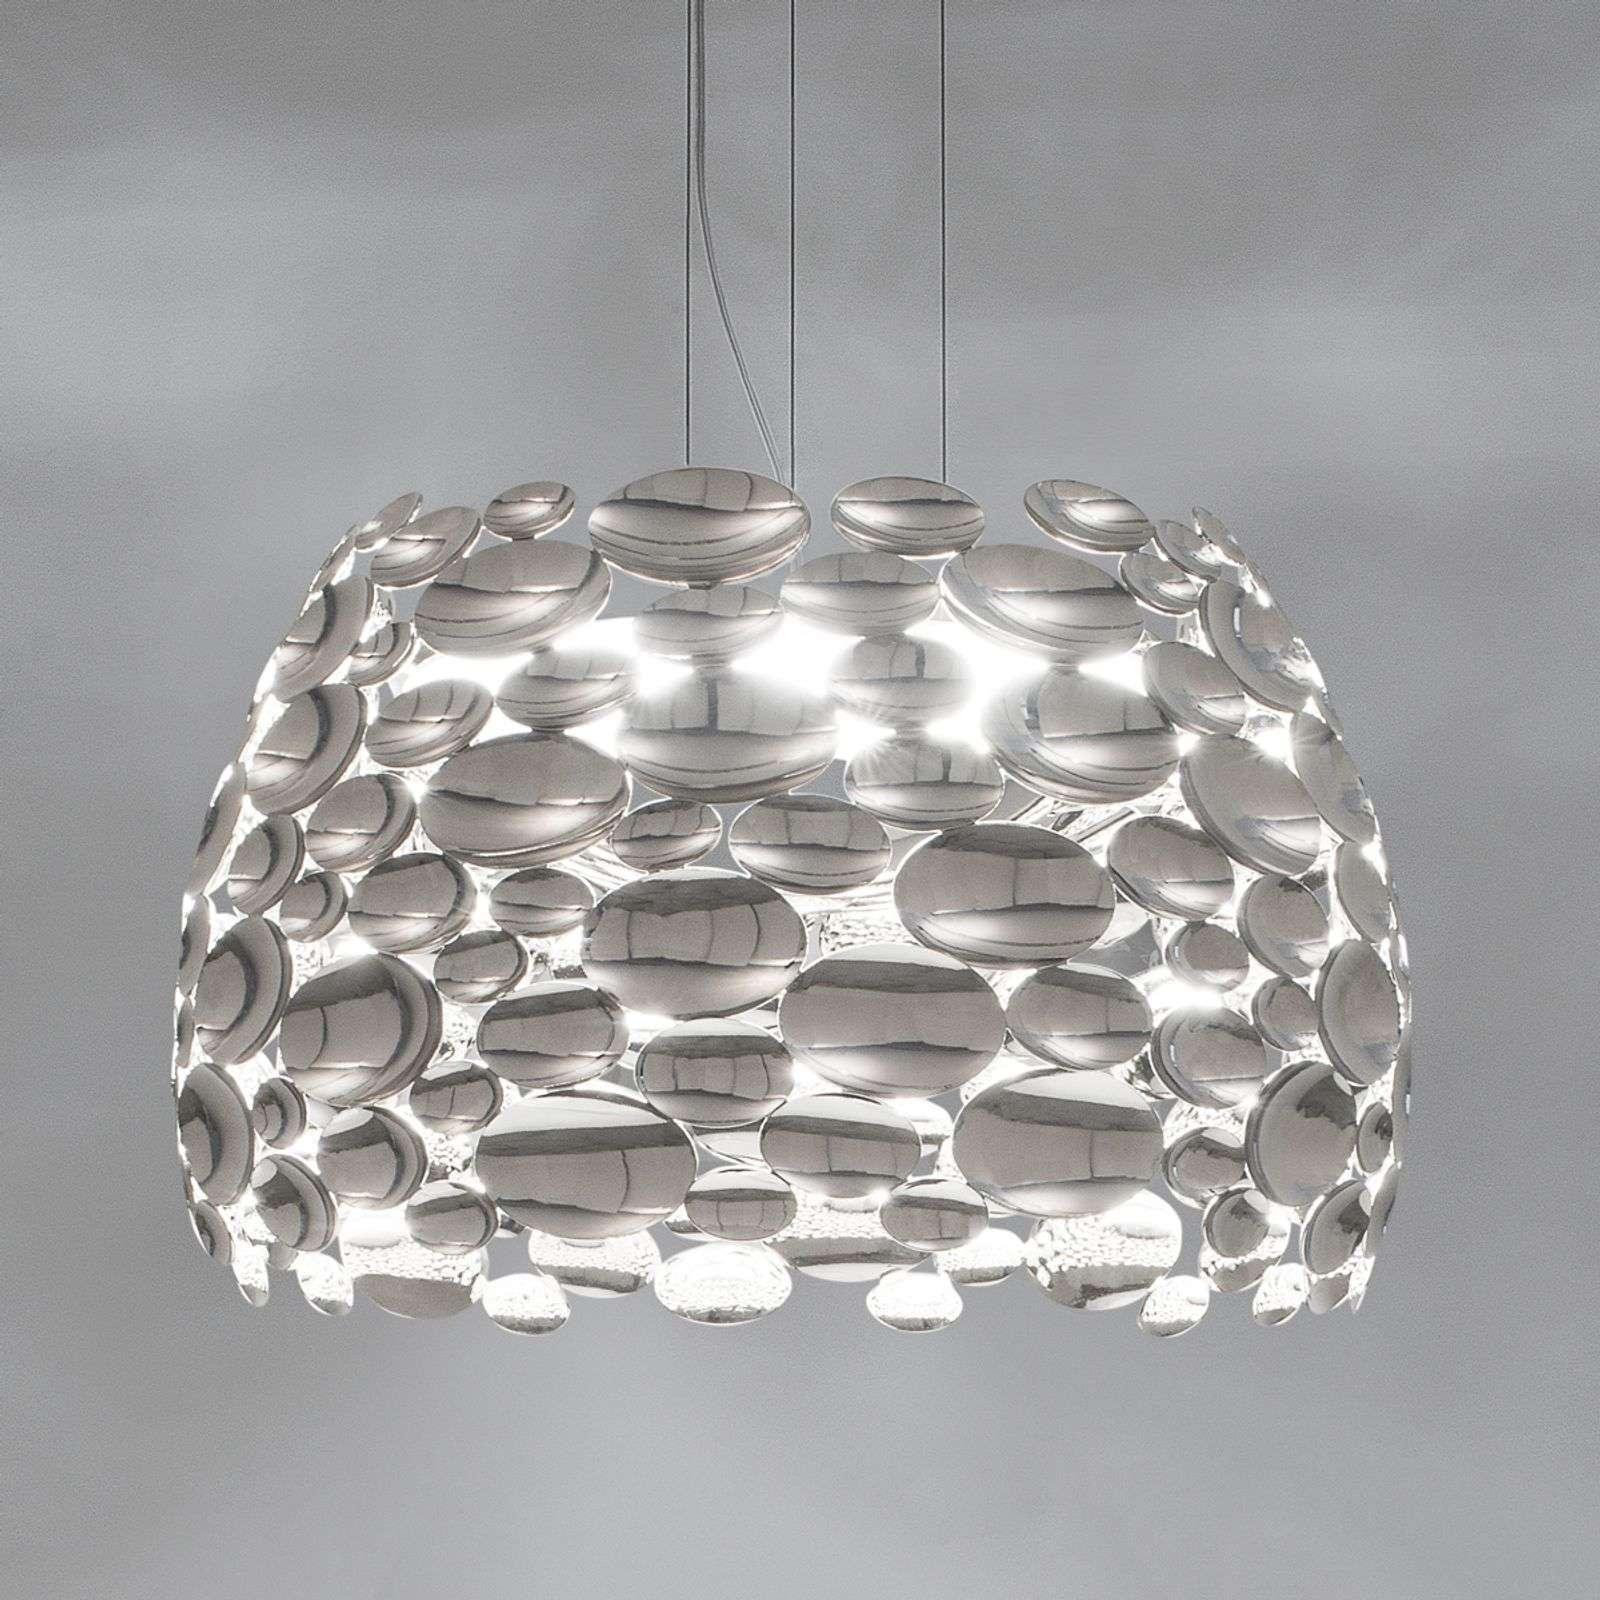 Suspension LED couleur nickel Anish - Ø 44 cm